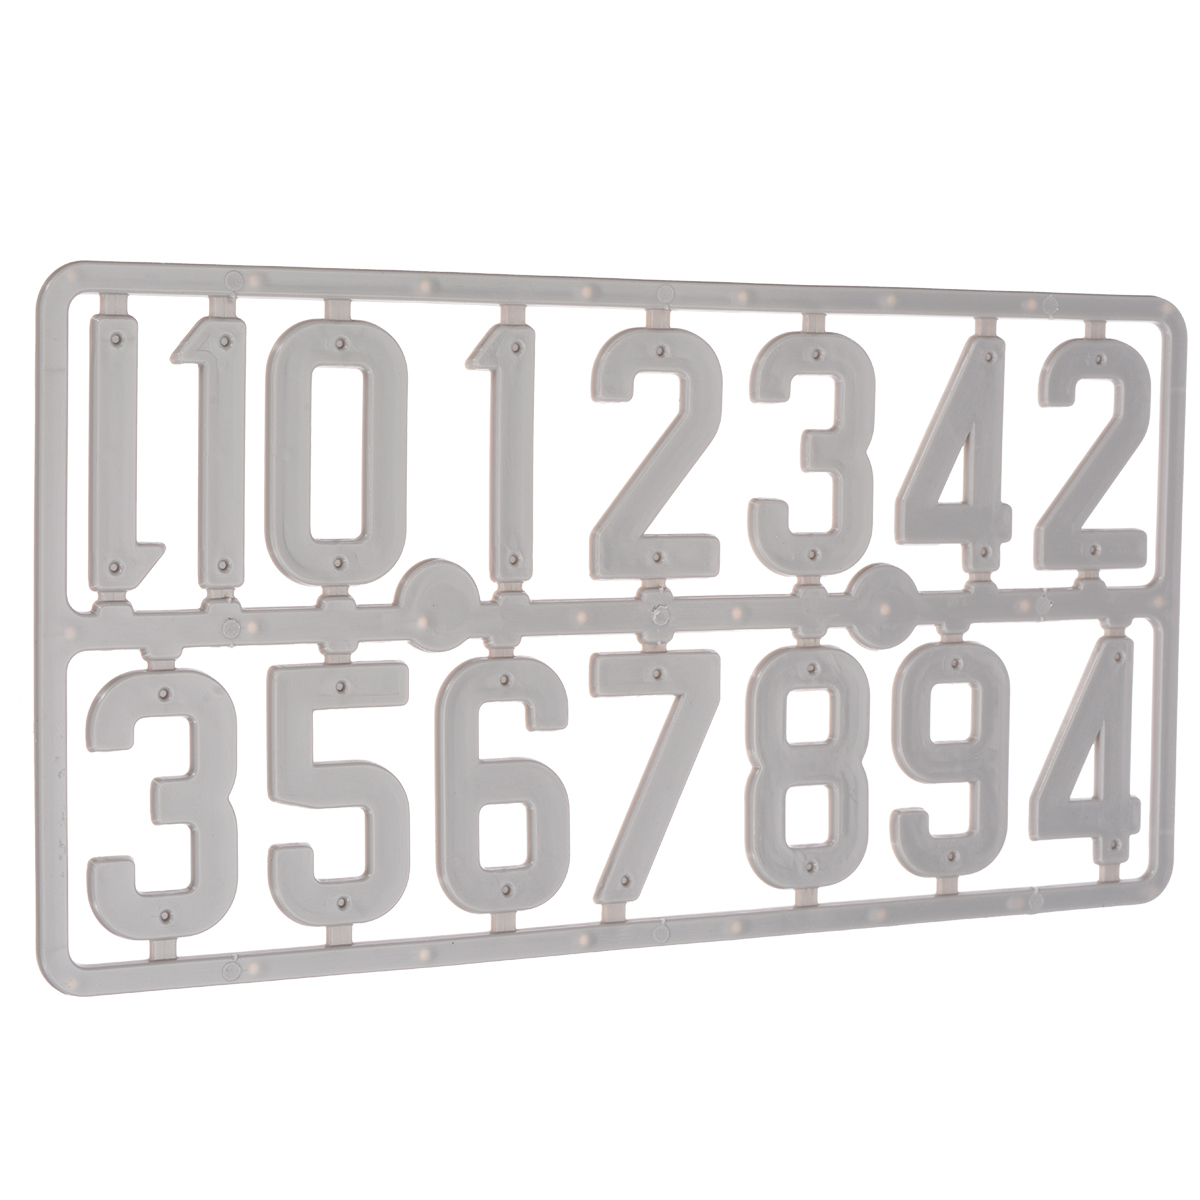 1pcs Plastic Beehive Digital Number Marking Board Bee Case Box Frame Signal Identification Beekeeping Equipment Tool